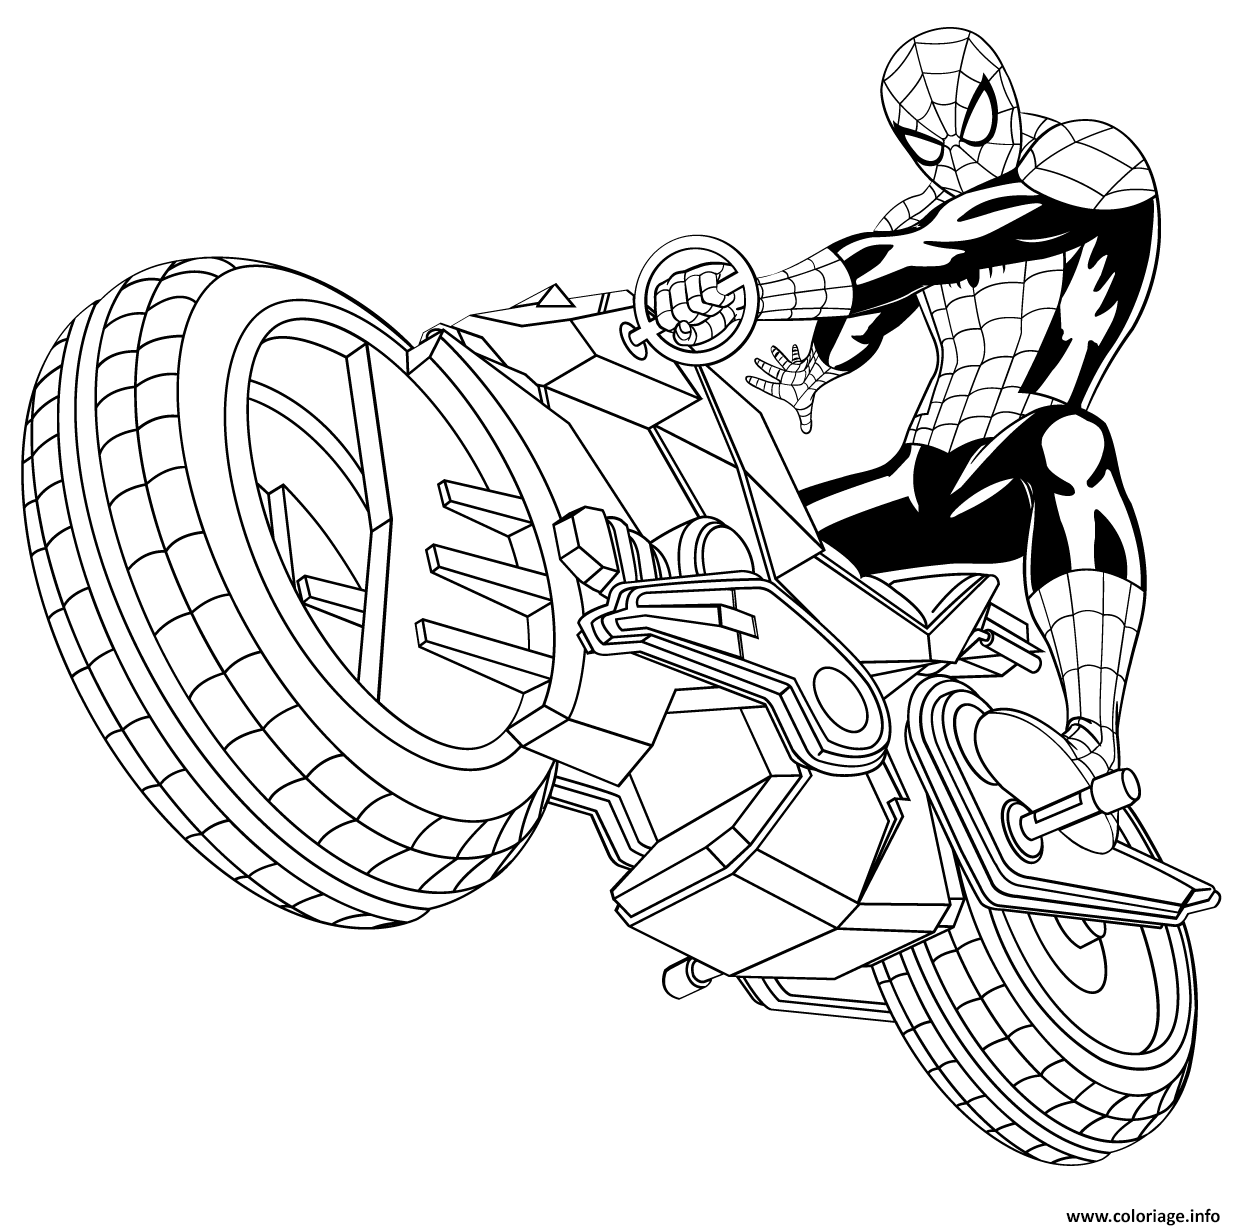 Coloriage spiderman avec sa spider moto auto tres rapide dessin - Coloriage spiderman 1 ...